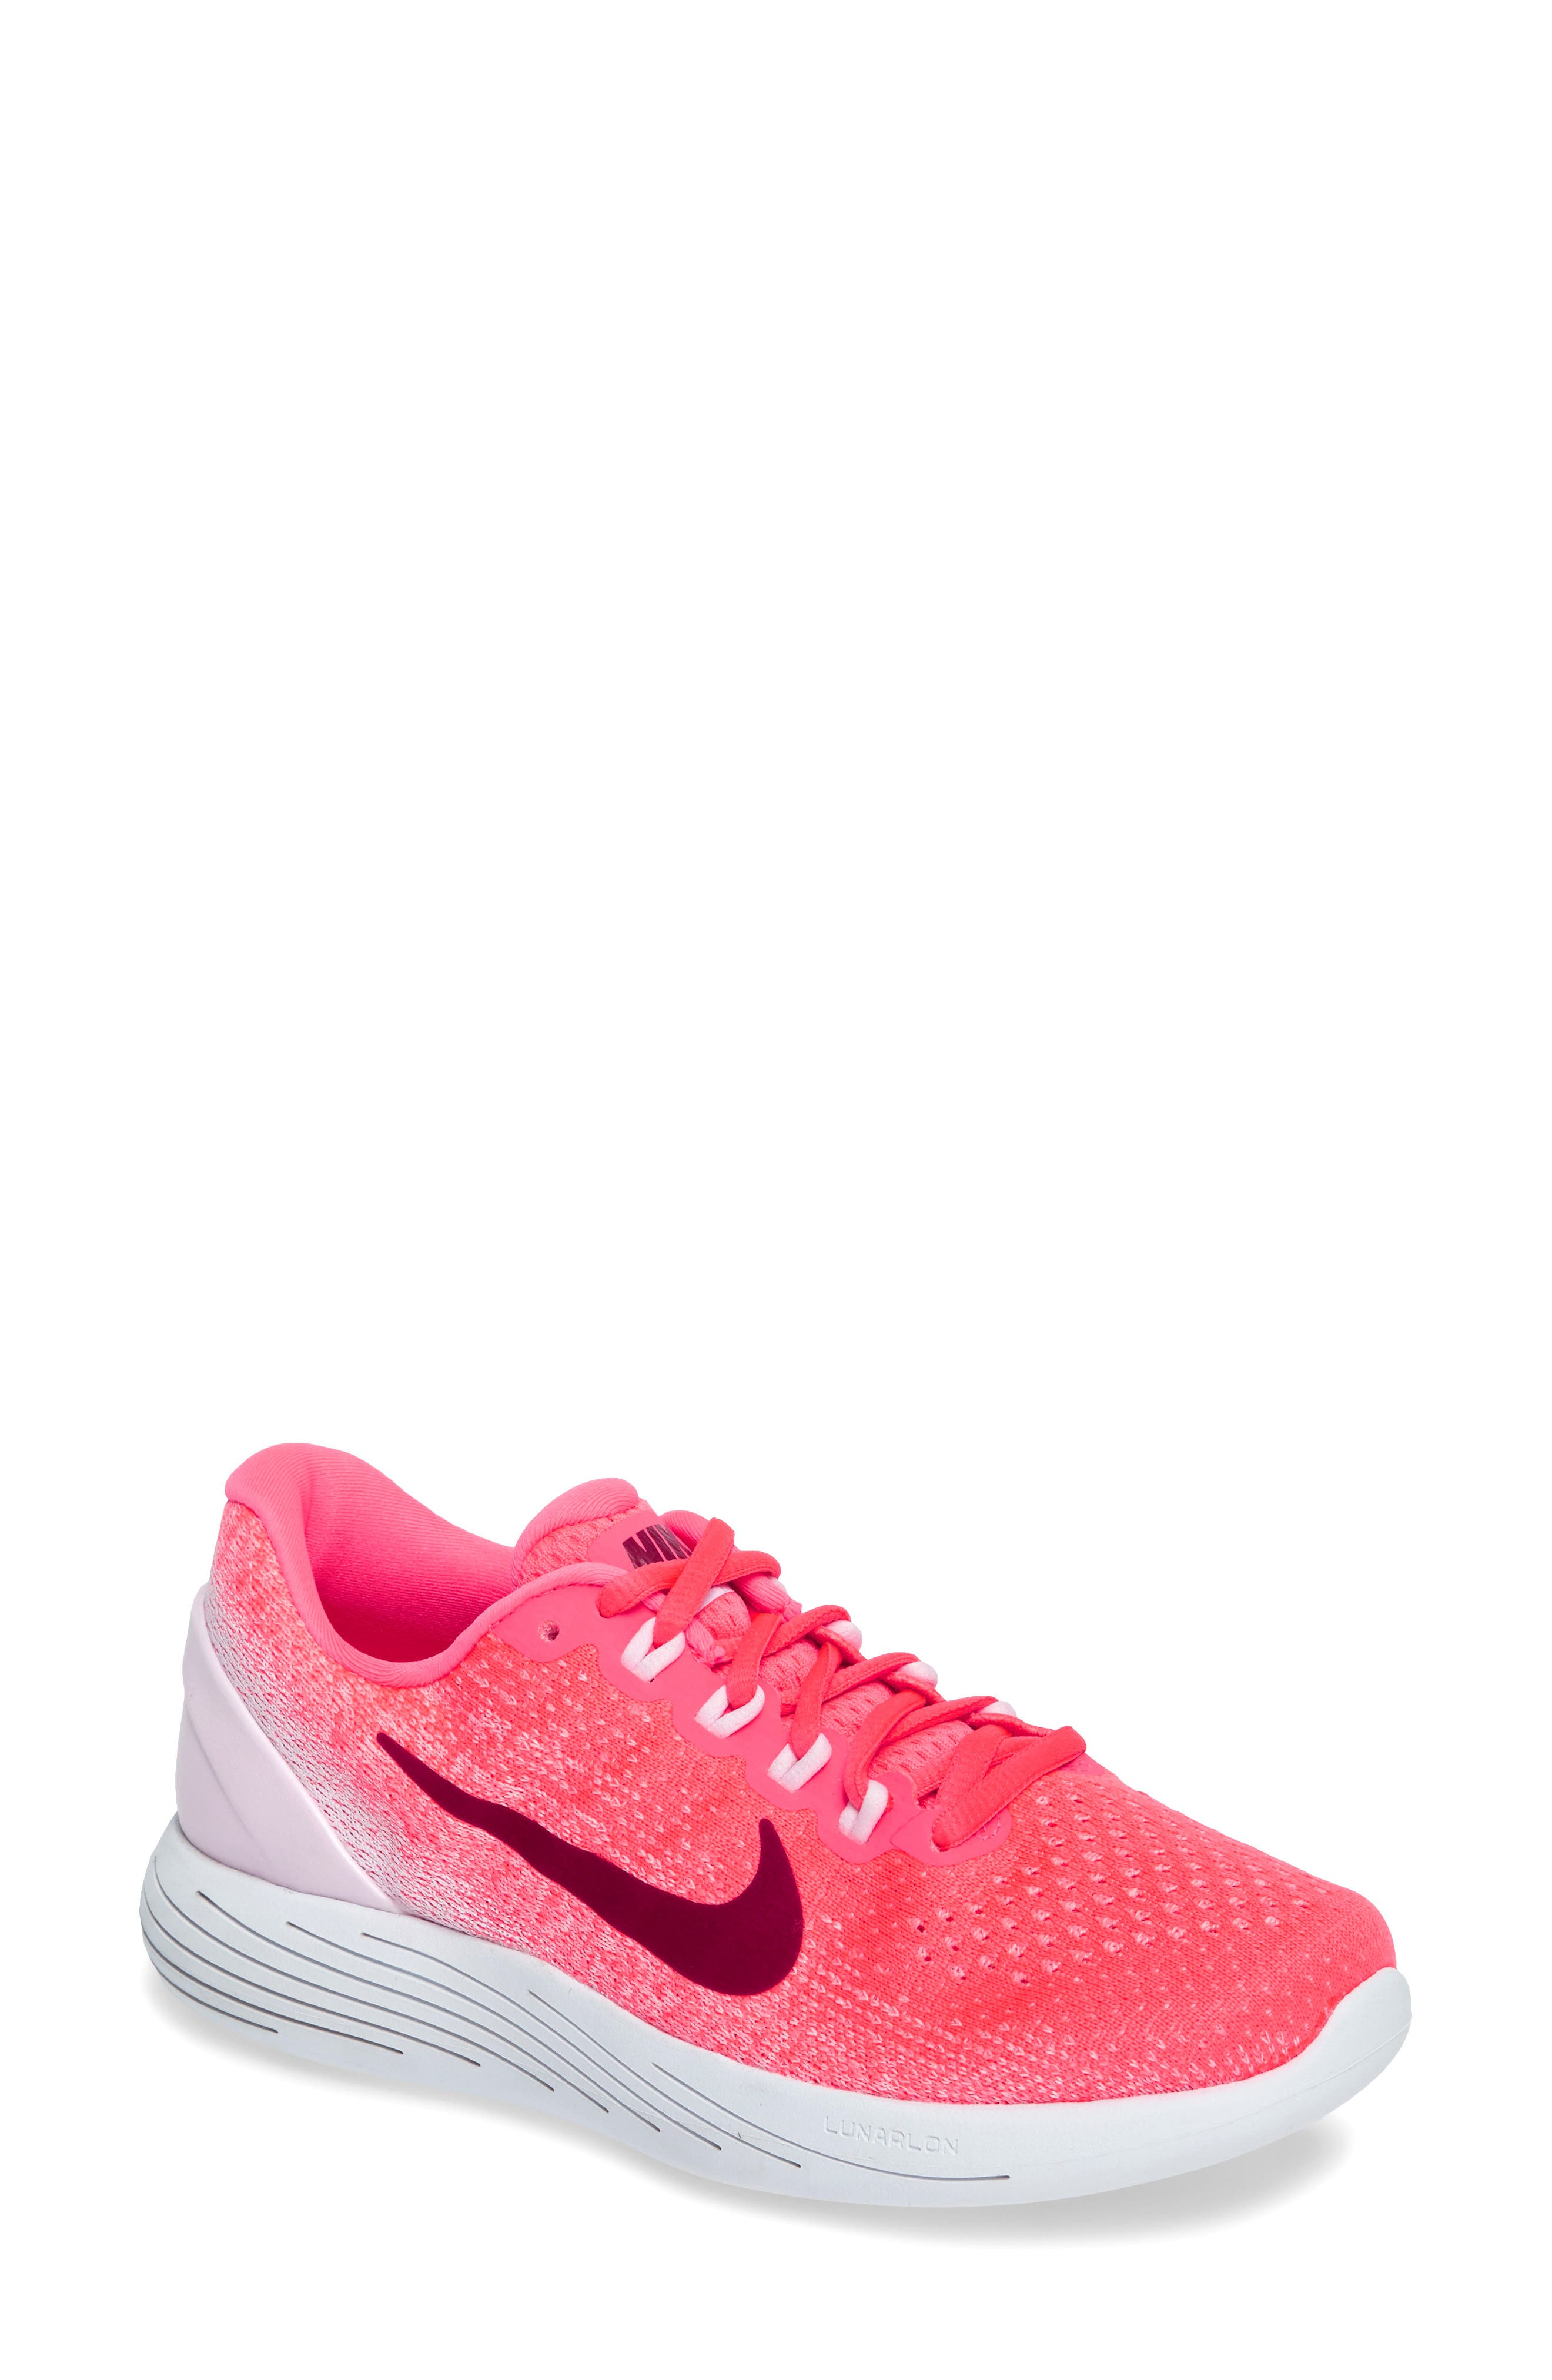 Nike LunarGlide 9 Running Shoe (Women)